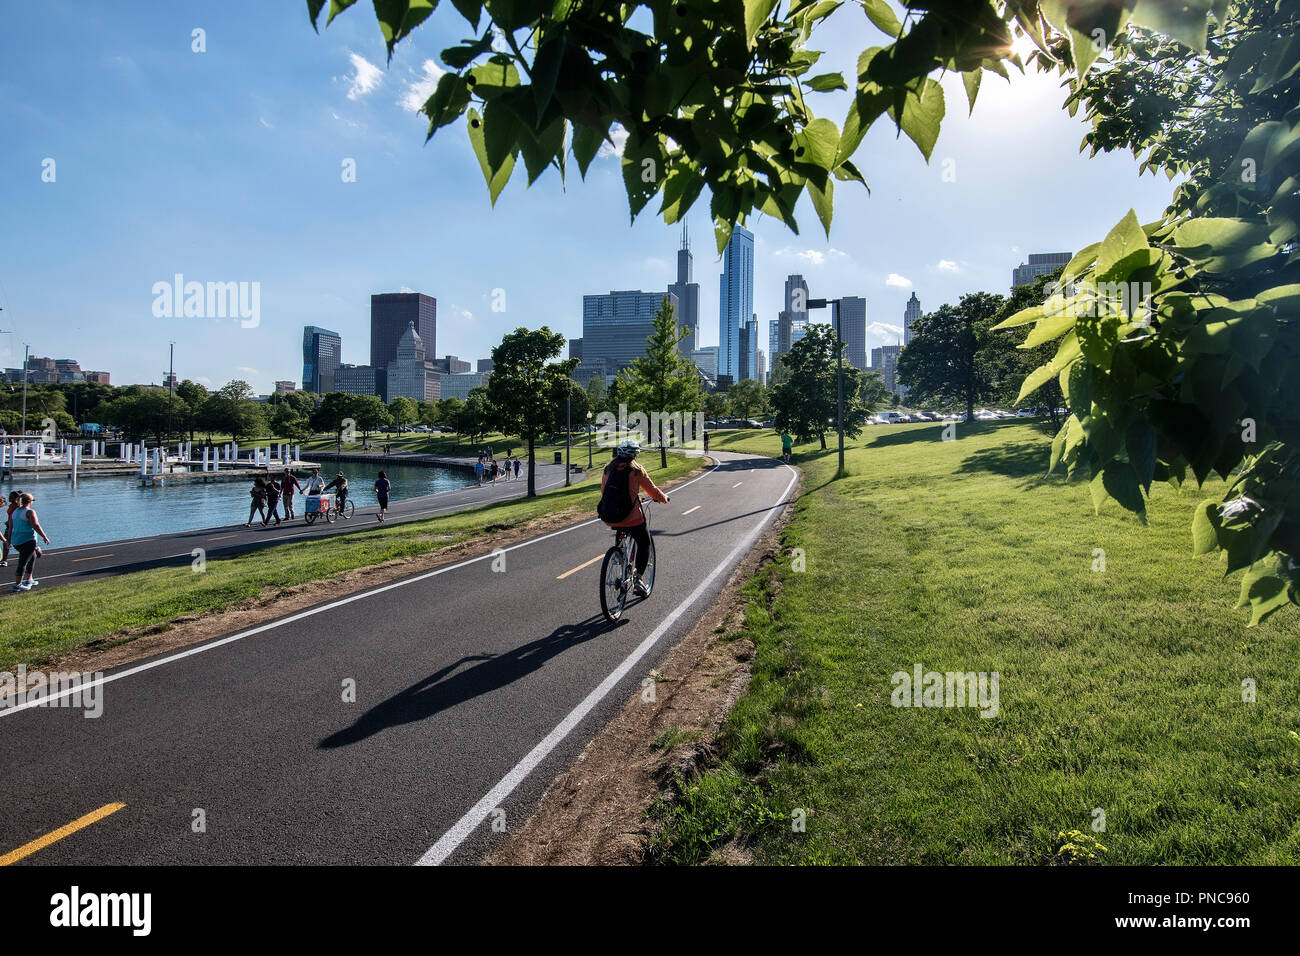 Bicycle riders on Lakefront Trail with the Chicago, IL skyline. - Stock Image